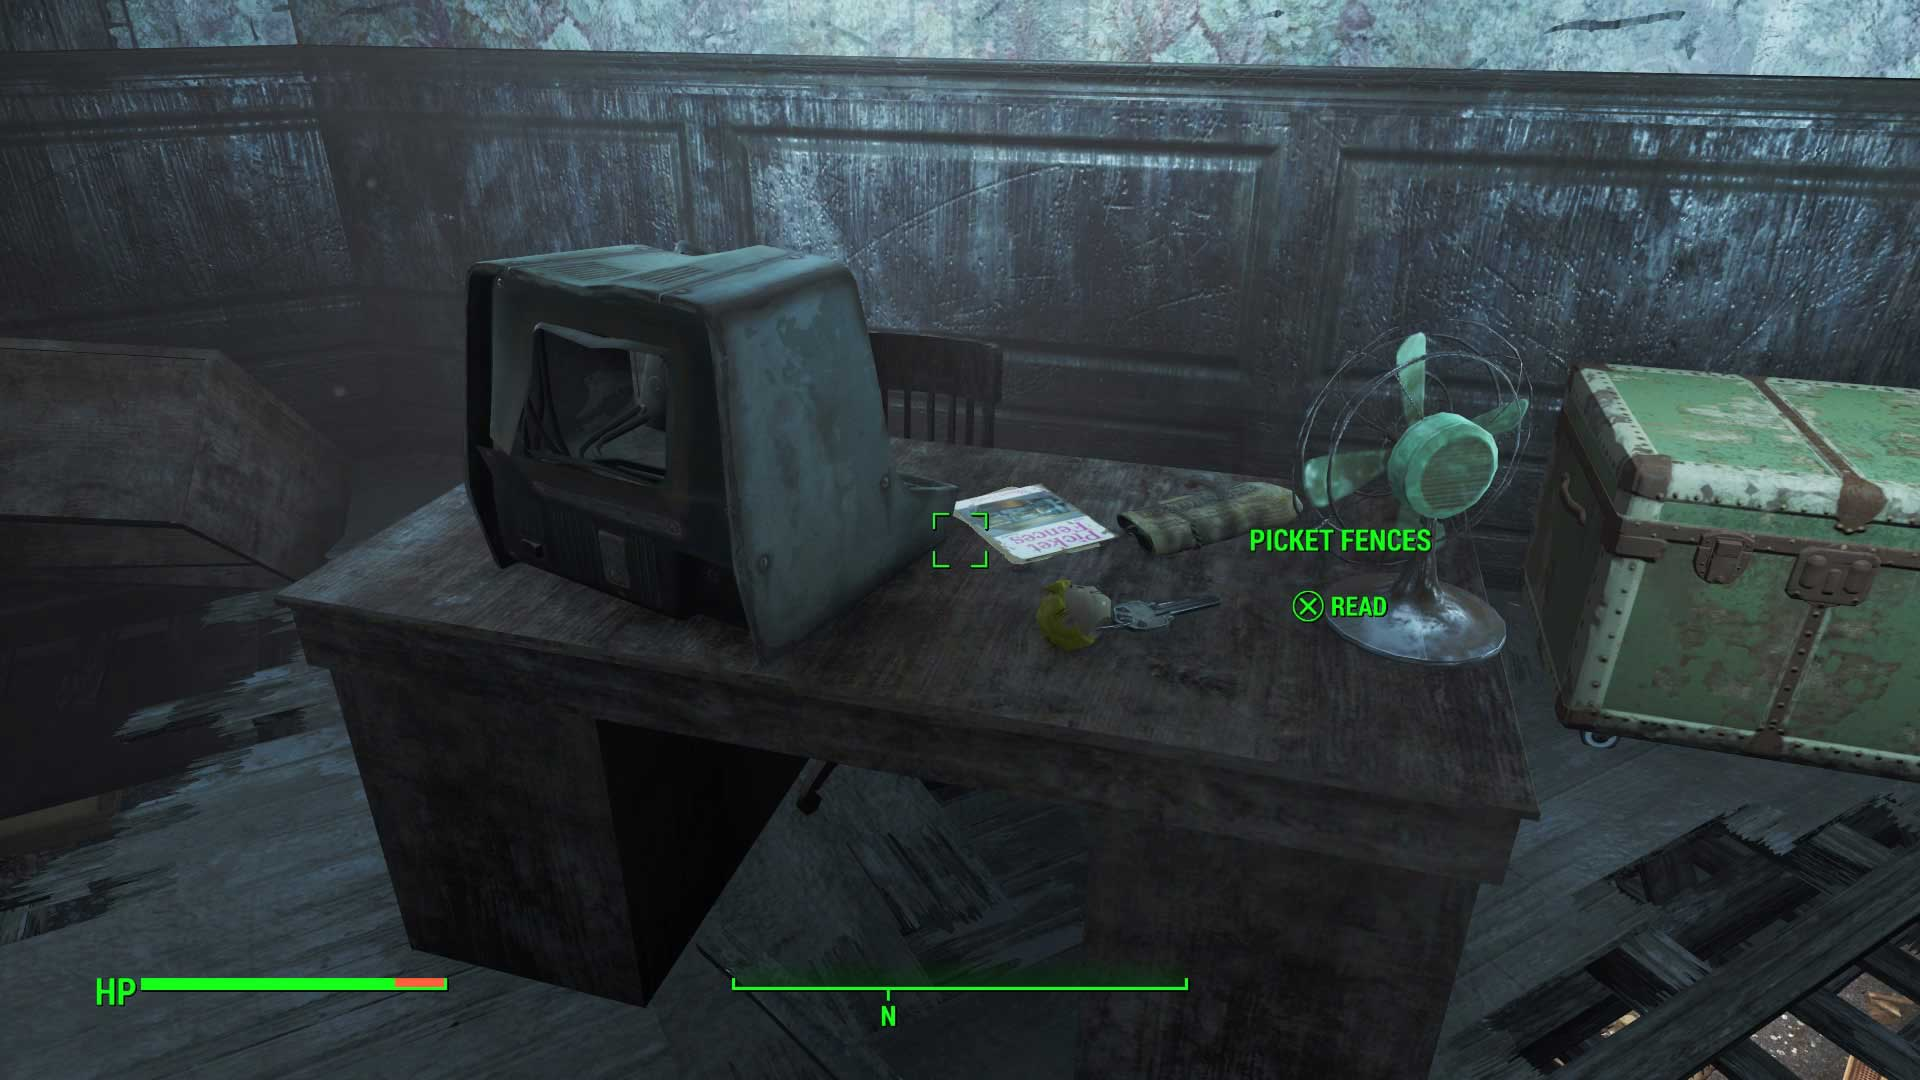 fallout 4 guide skill books locations 18 20 Hidden Levels in Video Games